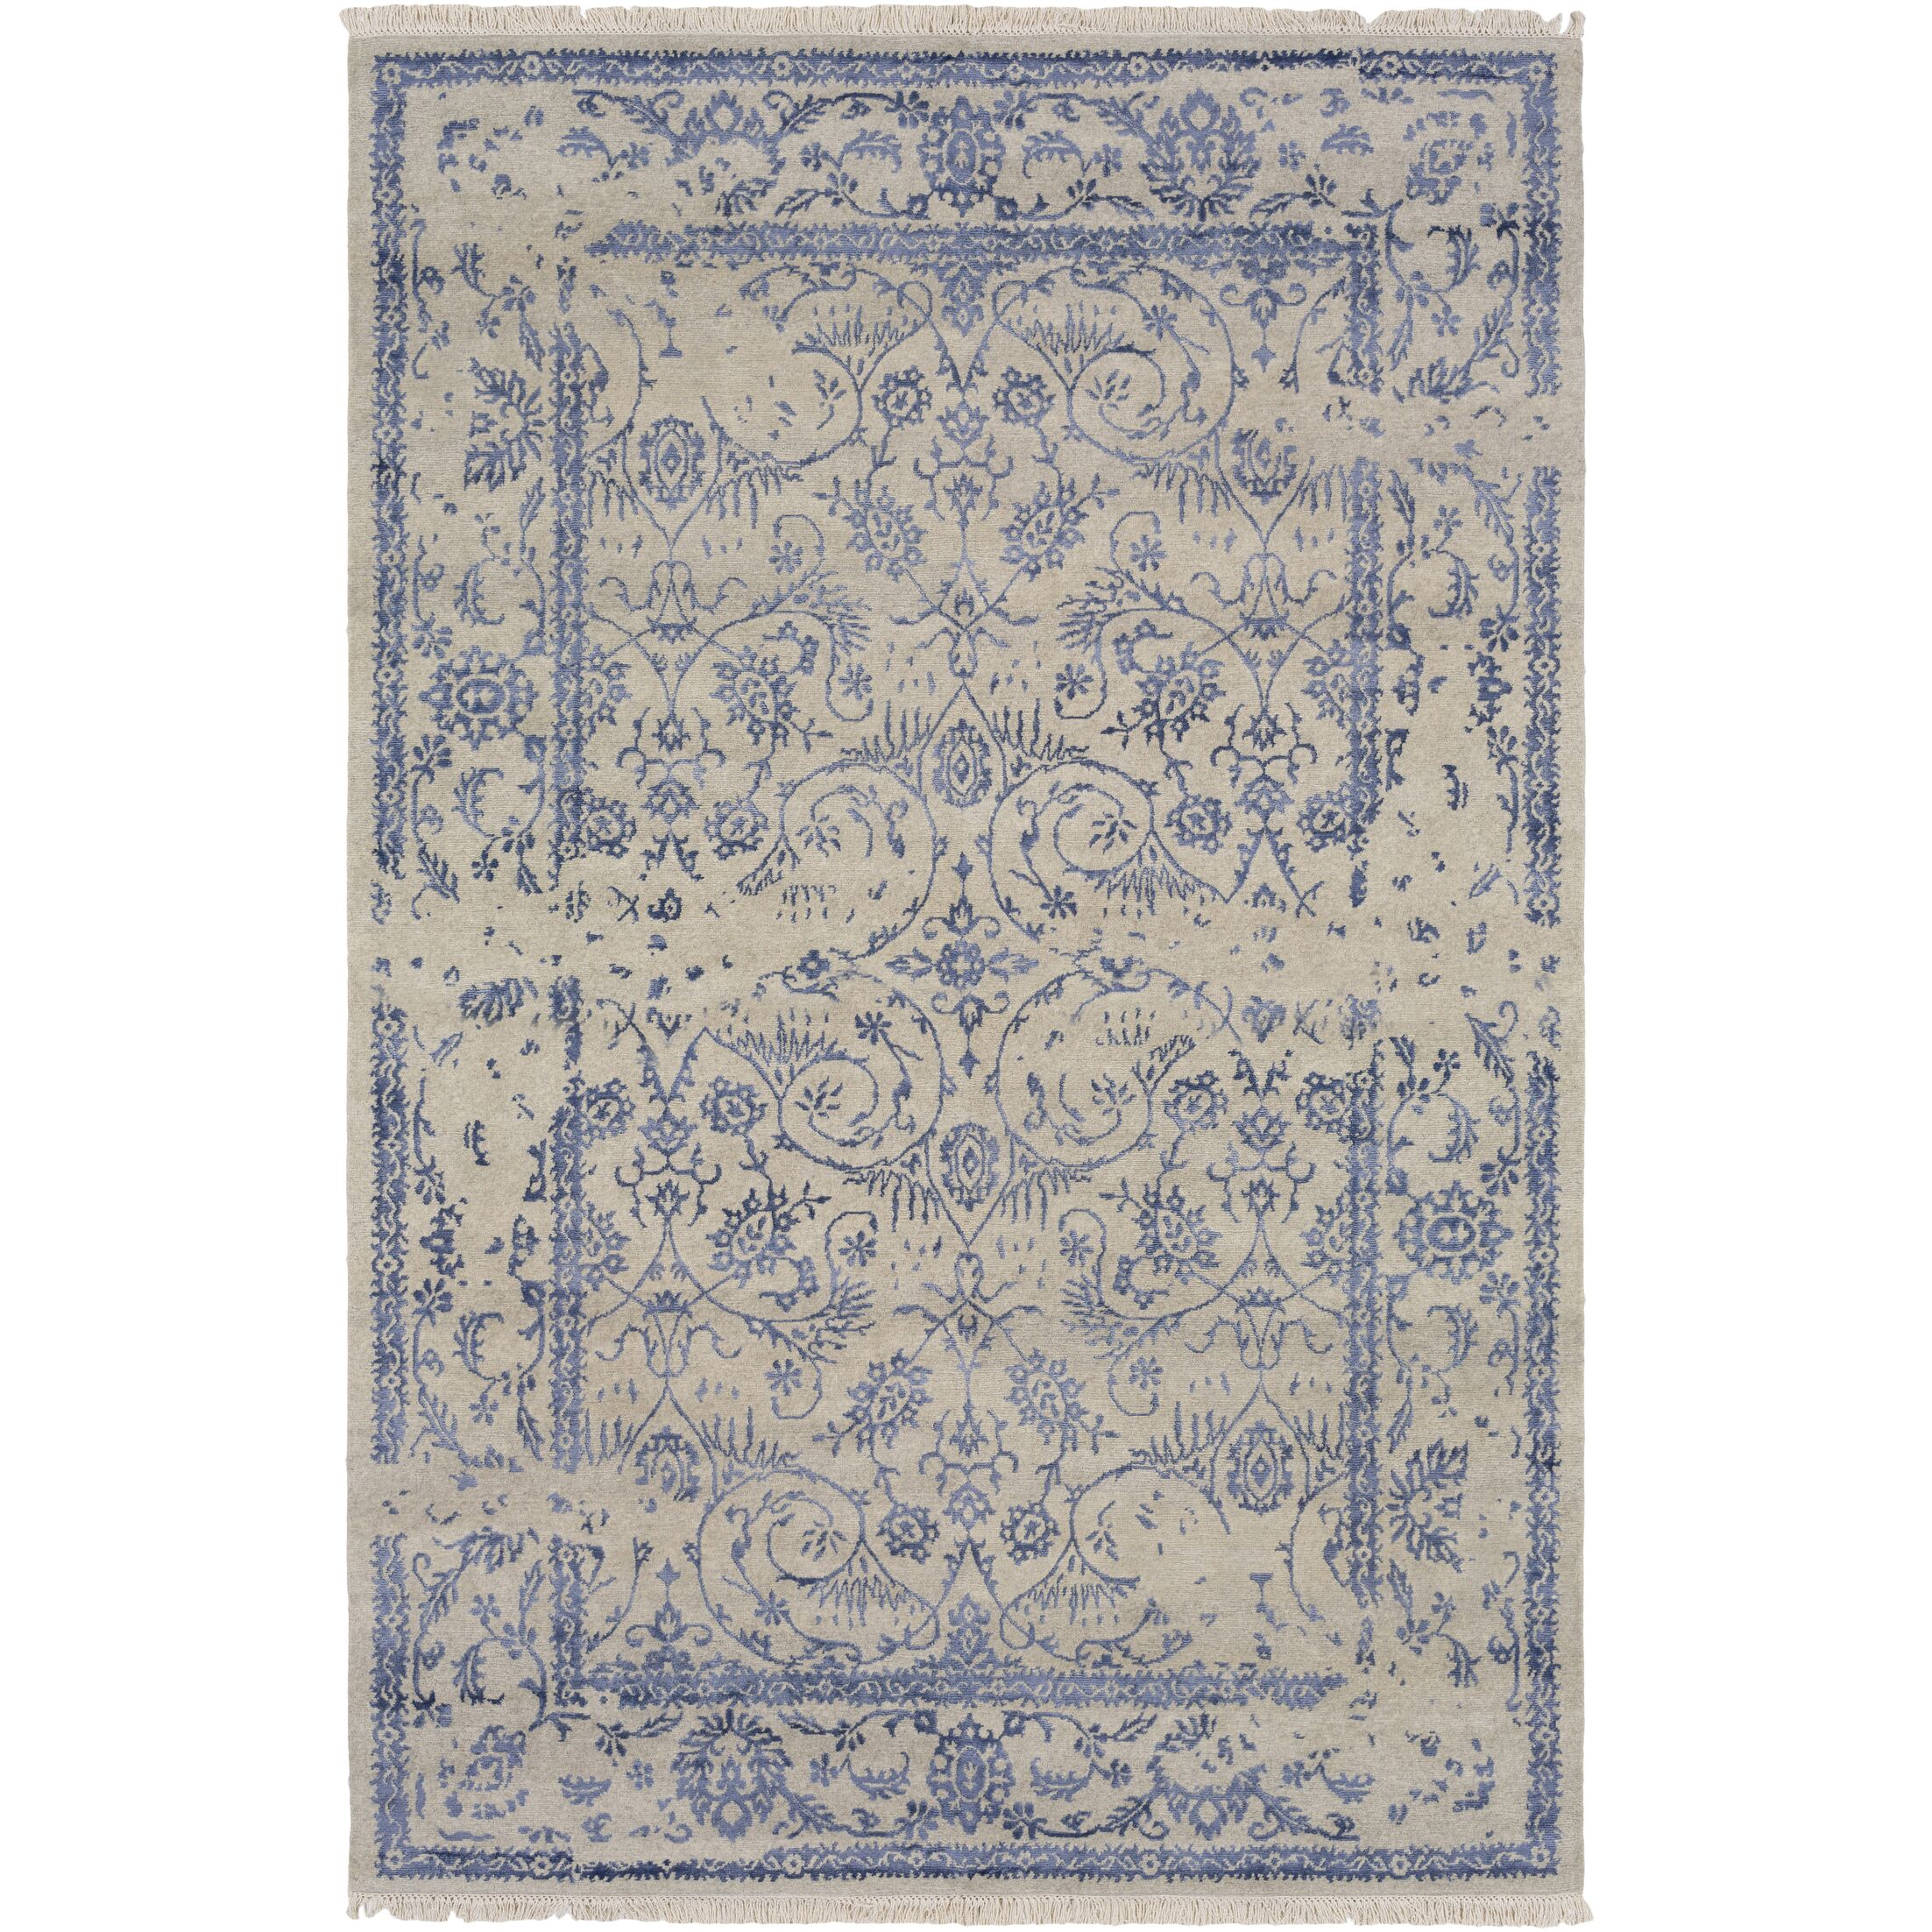 Marwan Hand-Knotted Light Gray Area Rug Rug Size: Rectangle 9' x 13'